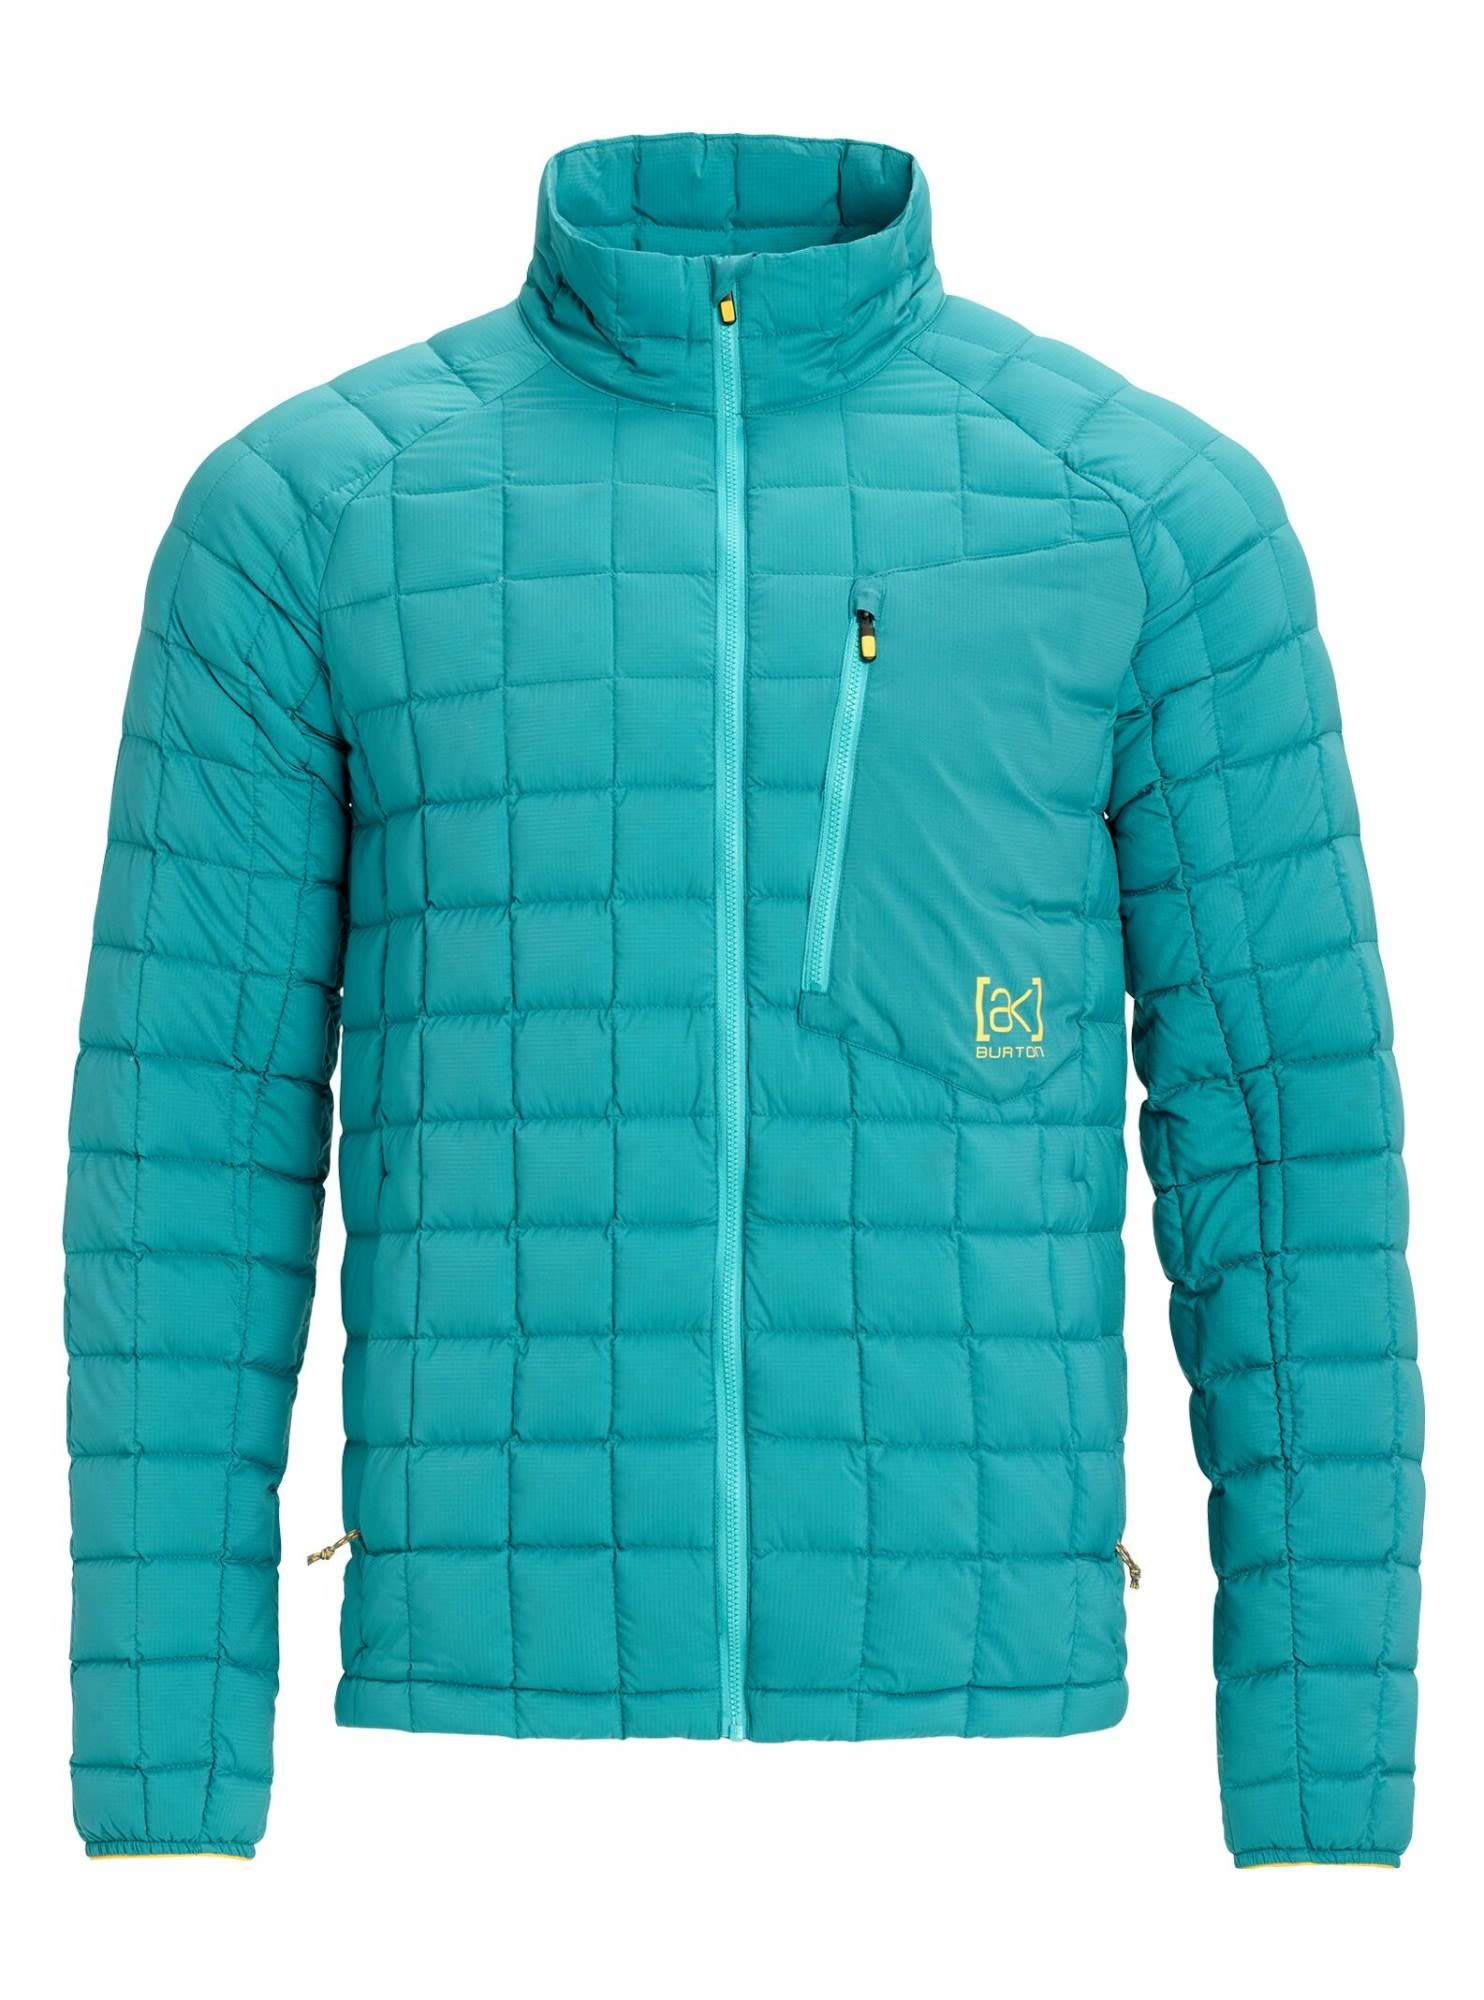 online contests, sweepstakes and giveaways - GIVEAWAY :: Men's Burton [ak] BK Lite Down Jacket (LARGE)